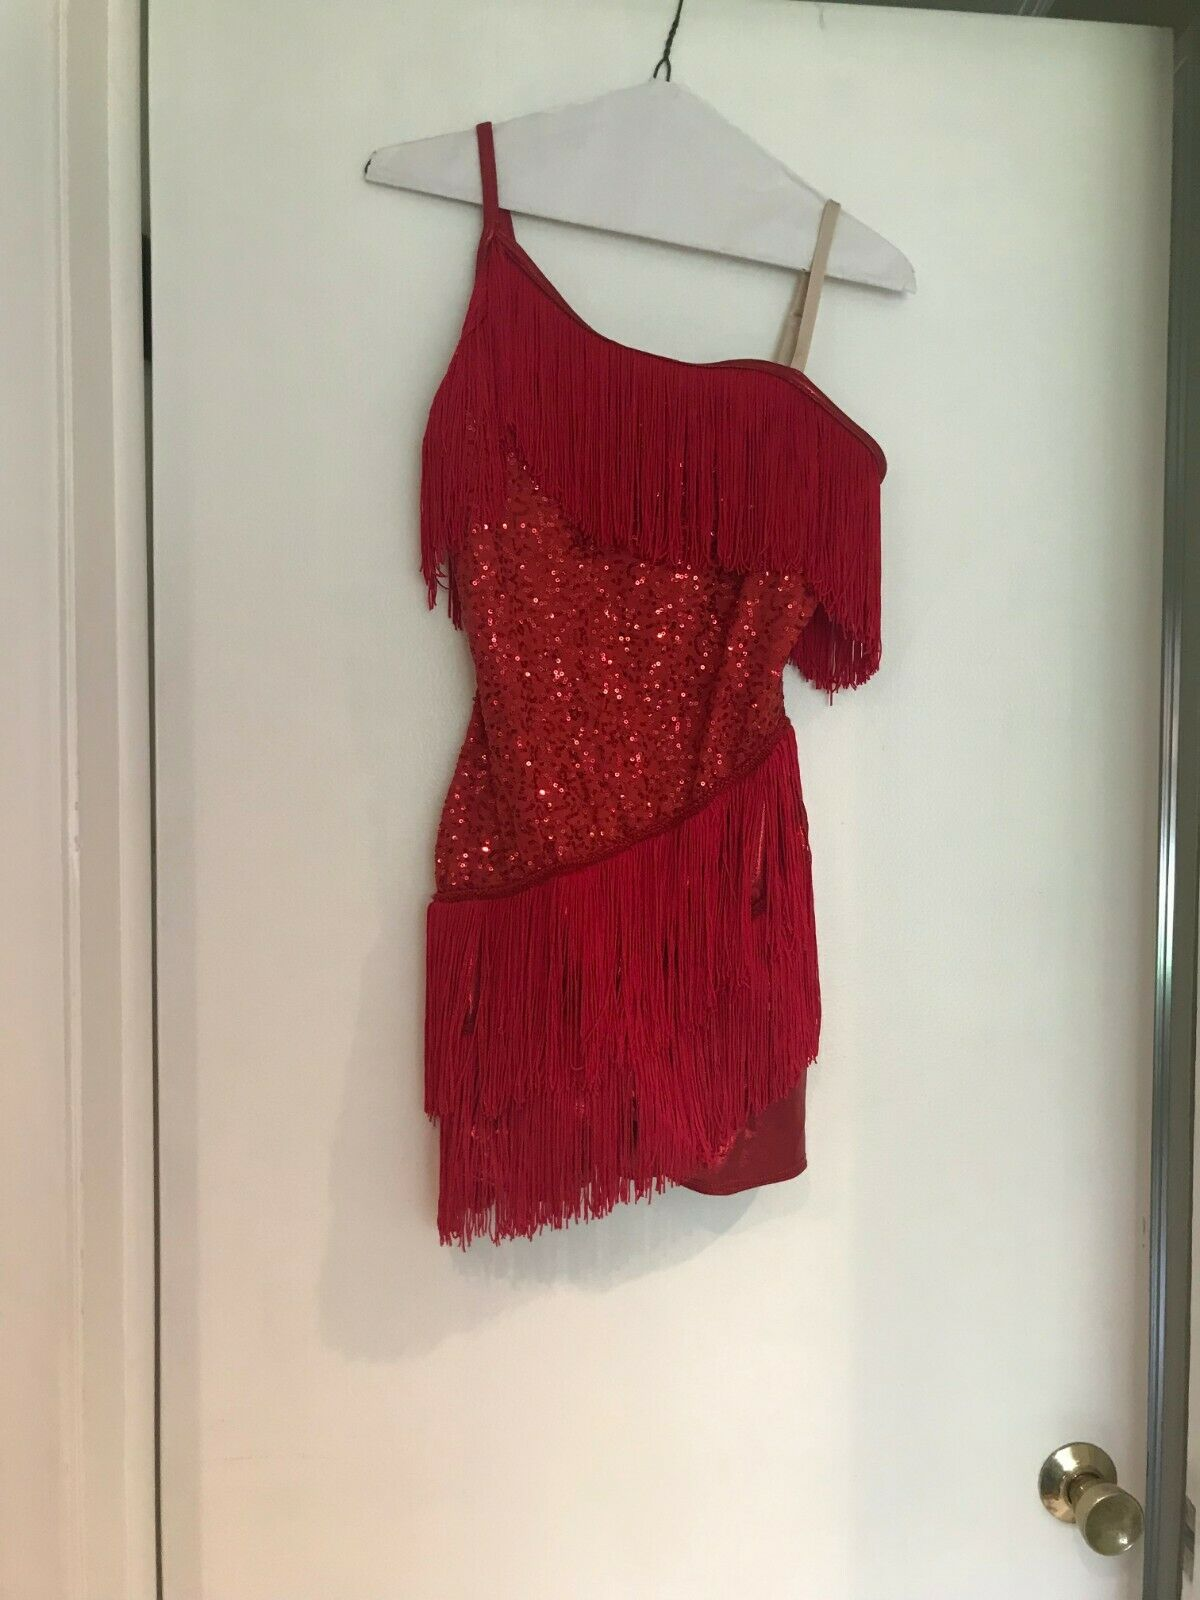 Red and Fringe Figure Ice Skating Dress  Costume (Large)  outlet factory shop